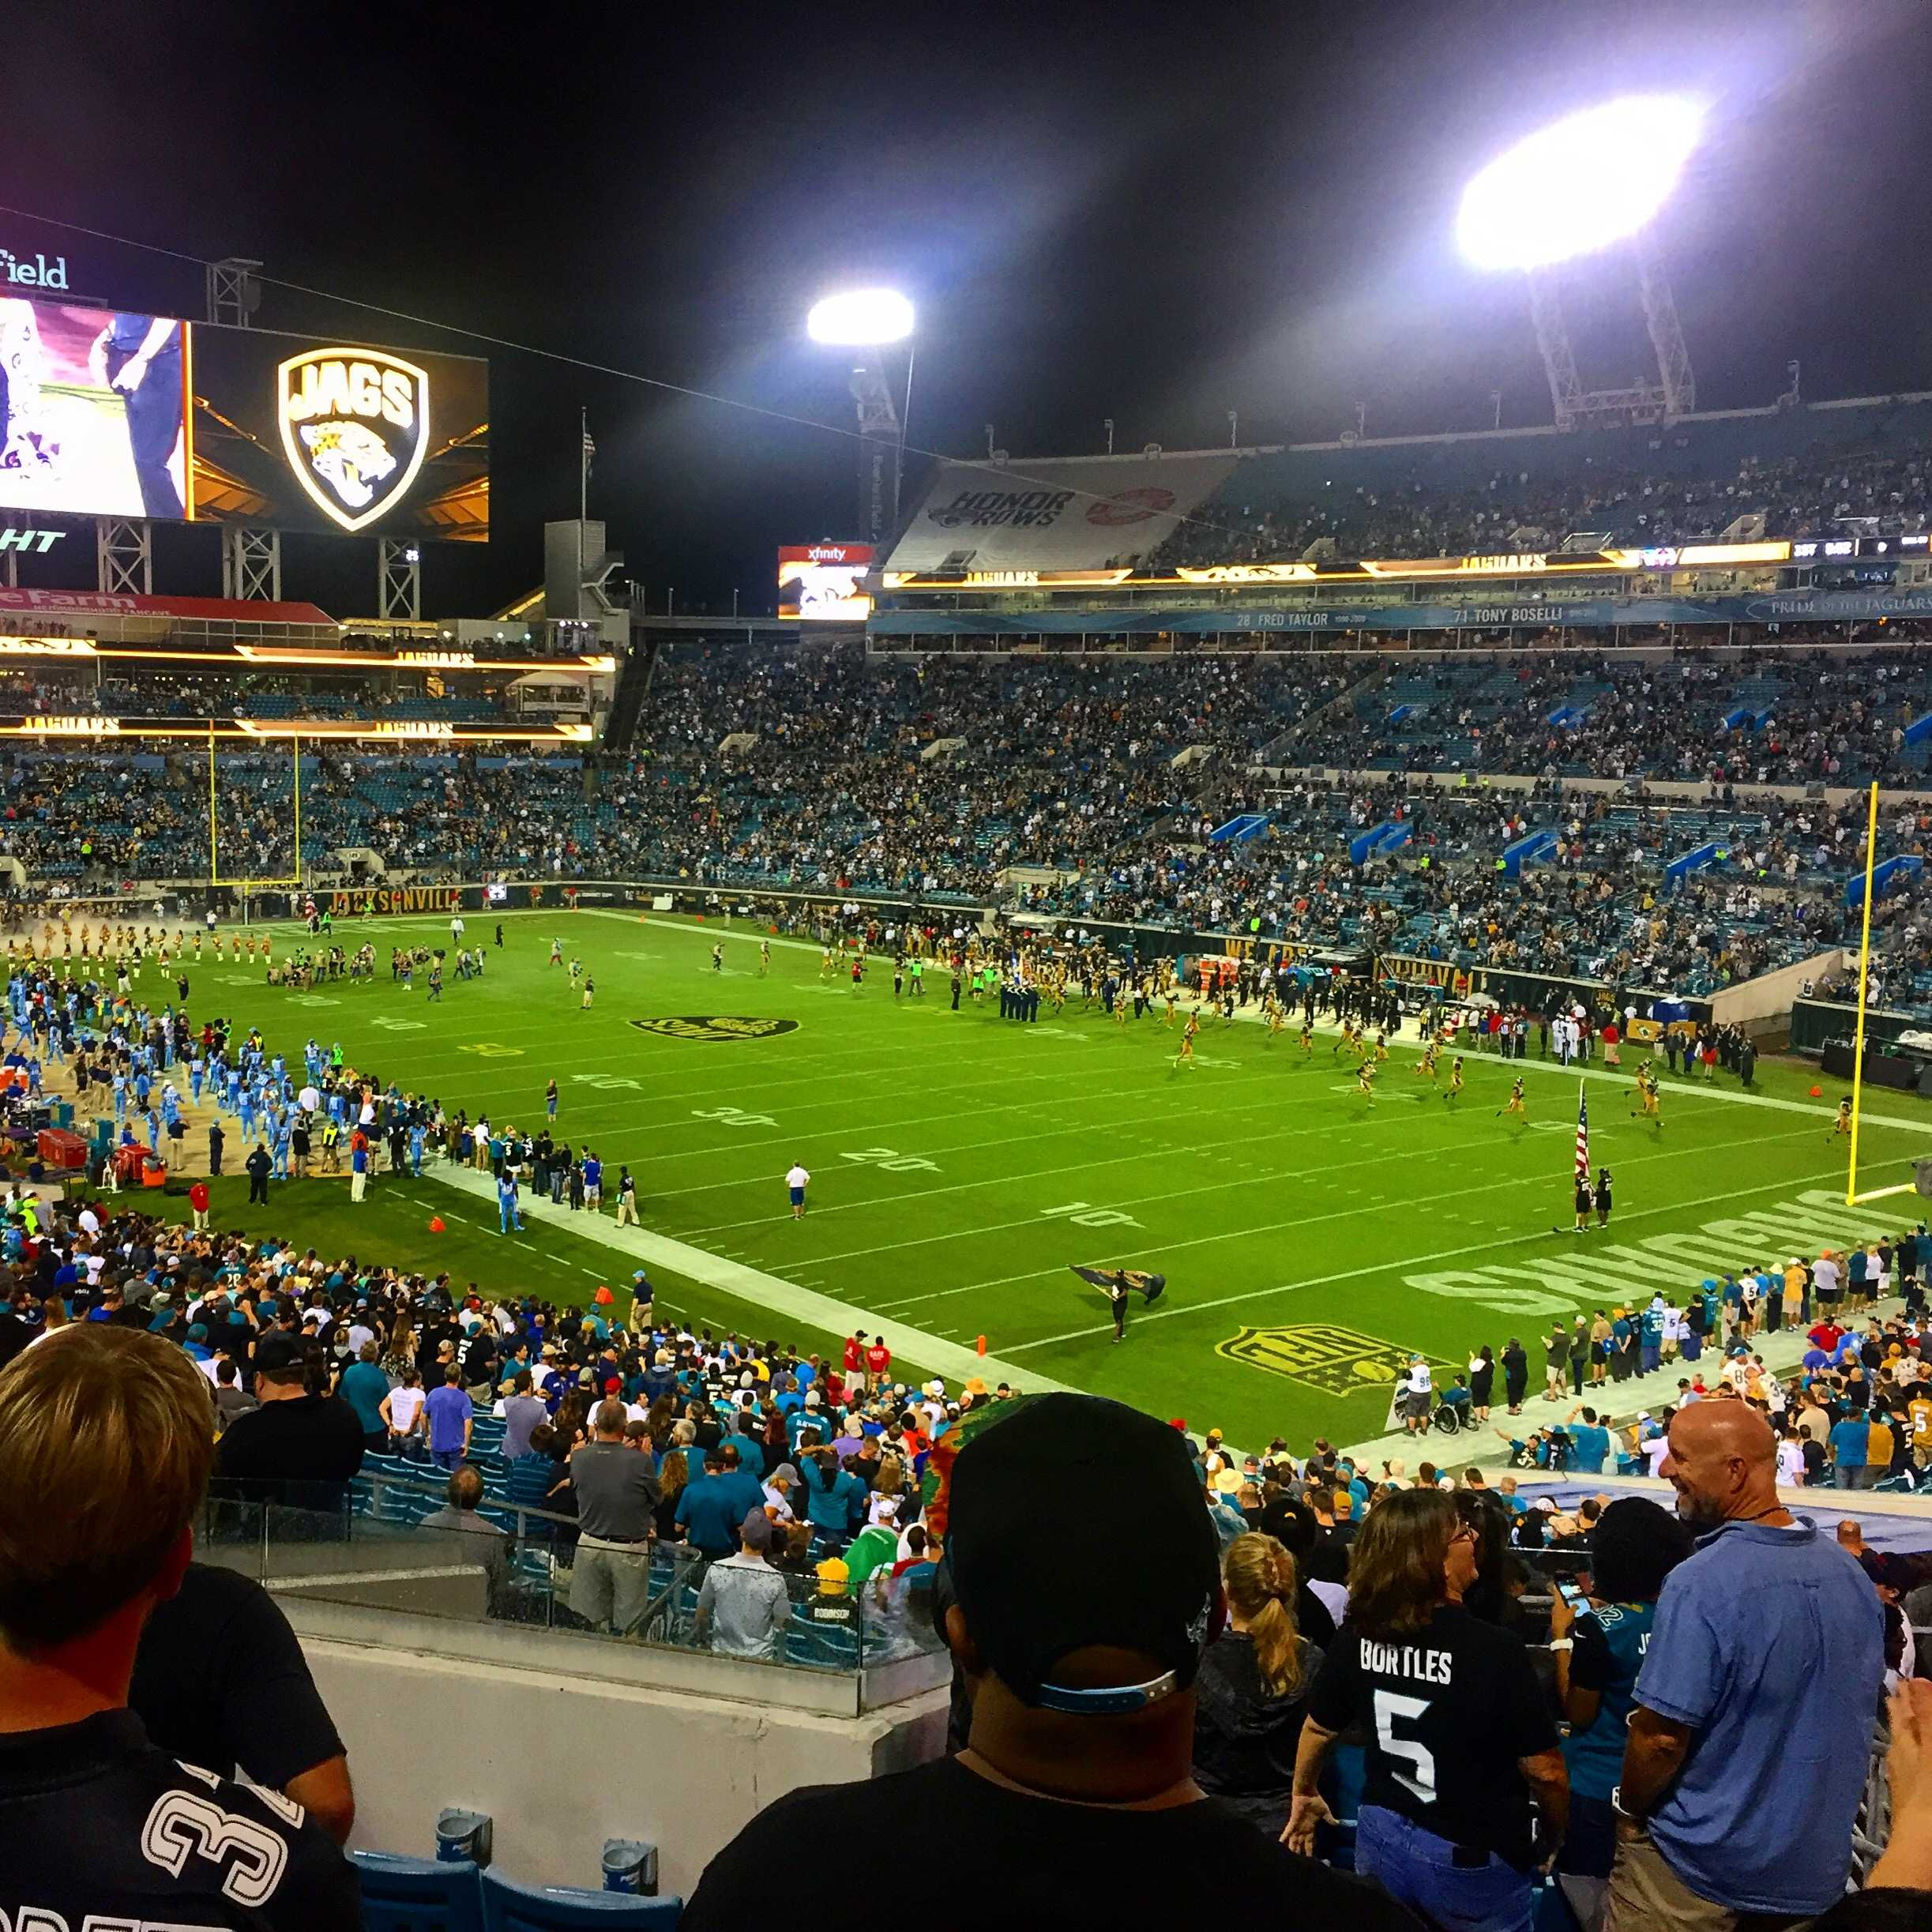 Jaguars Season Tickets On Sale For Students In Early Fall Semester